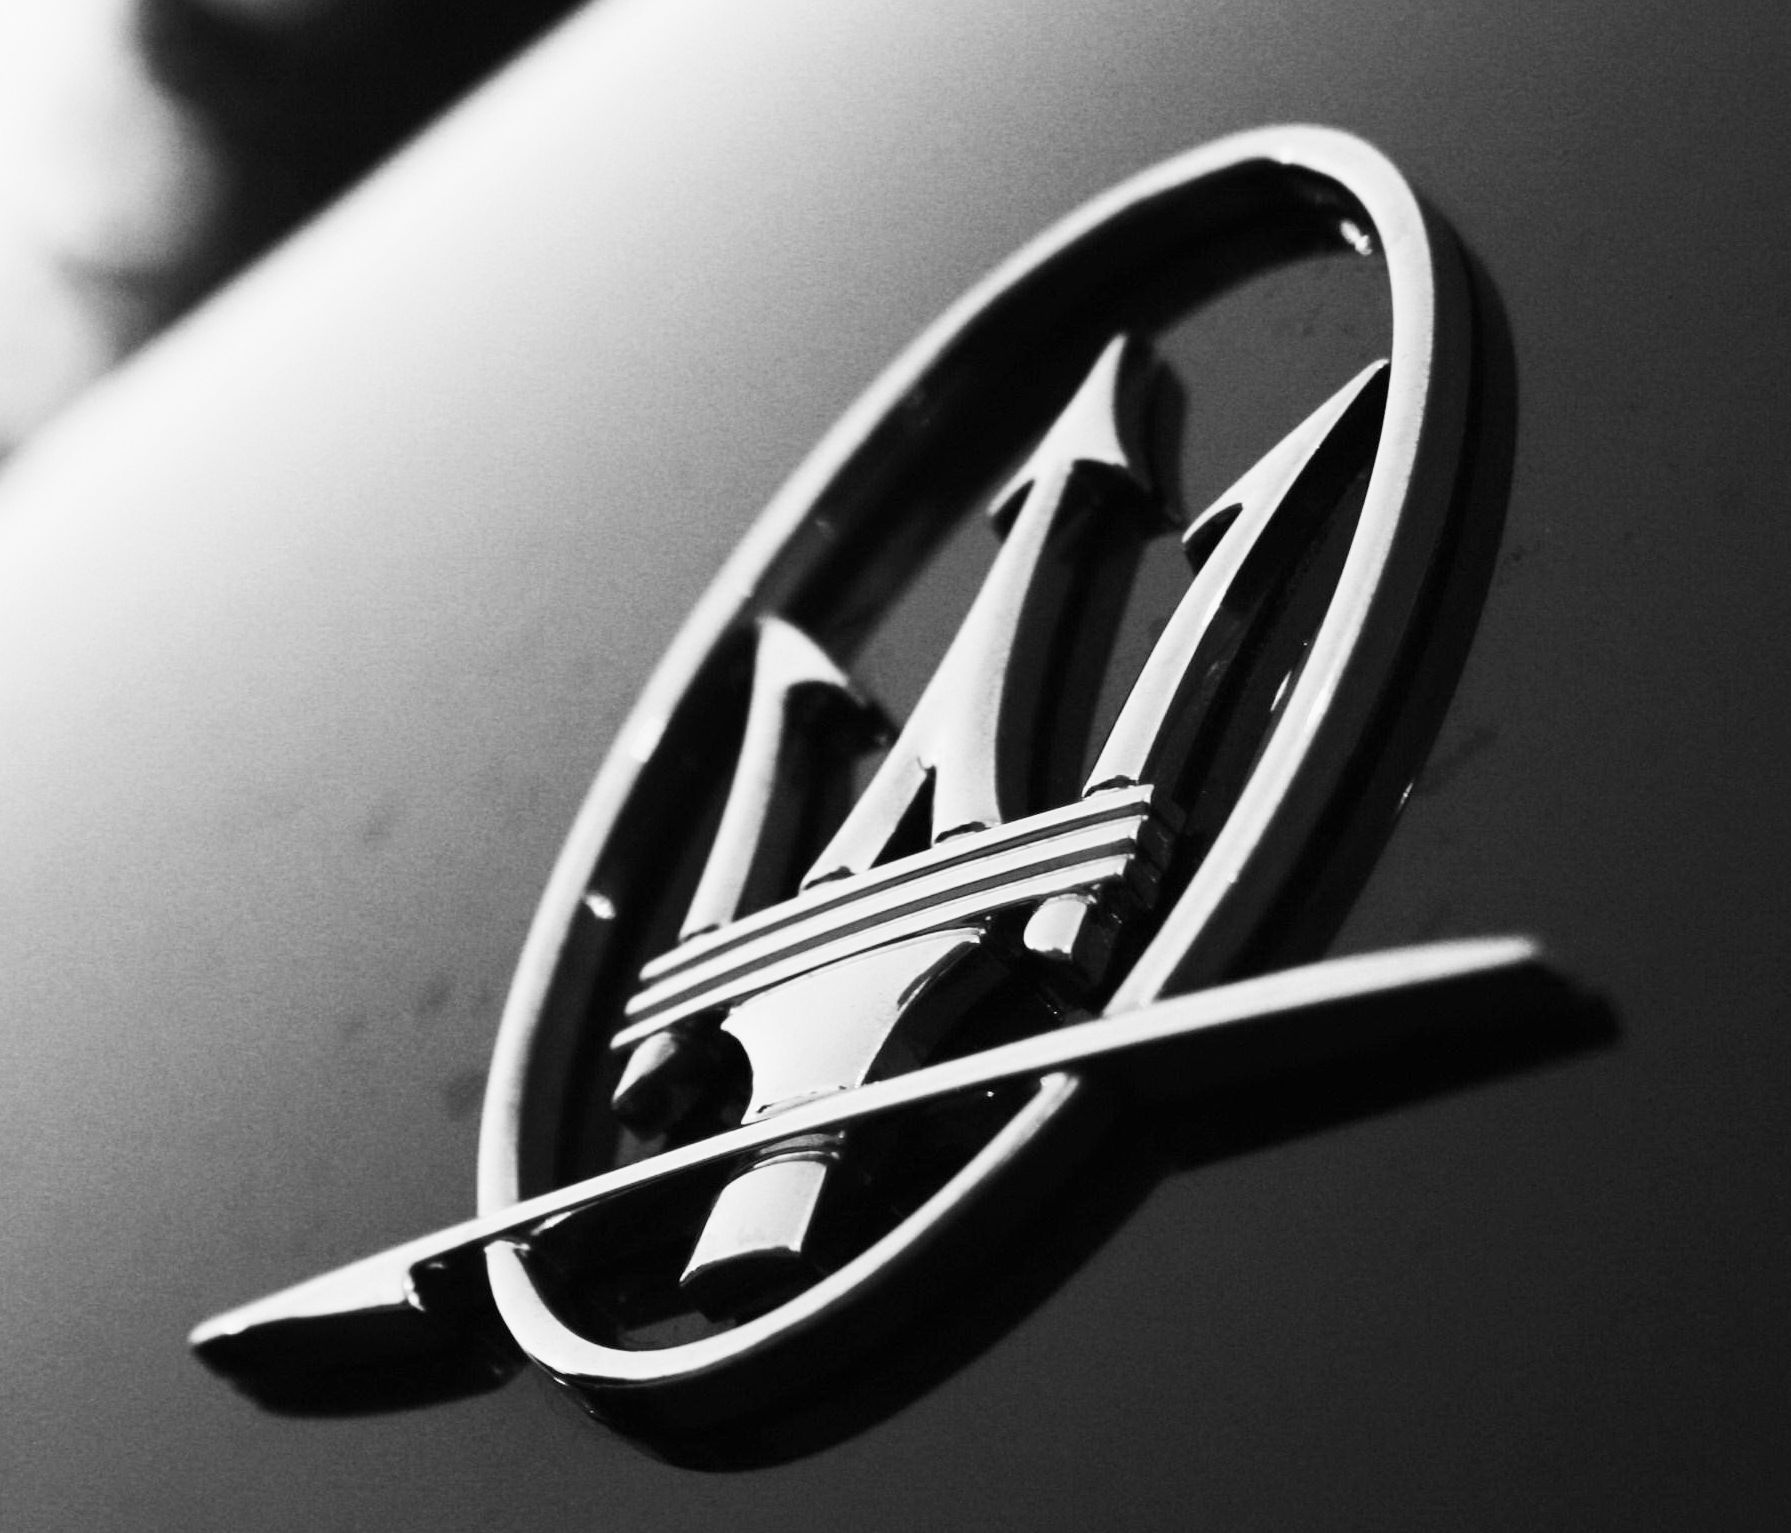 Luxury Car Logos: Cars & Motorcycles That I Love